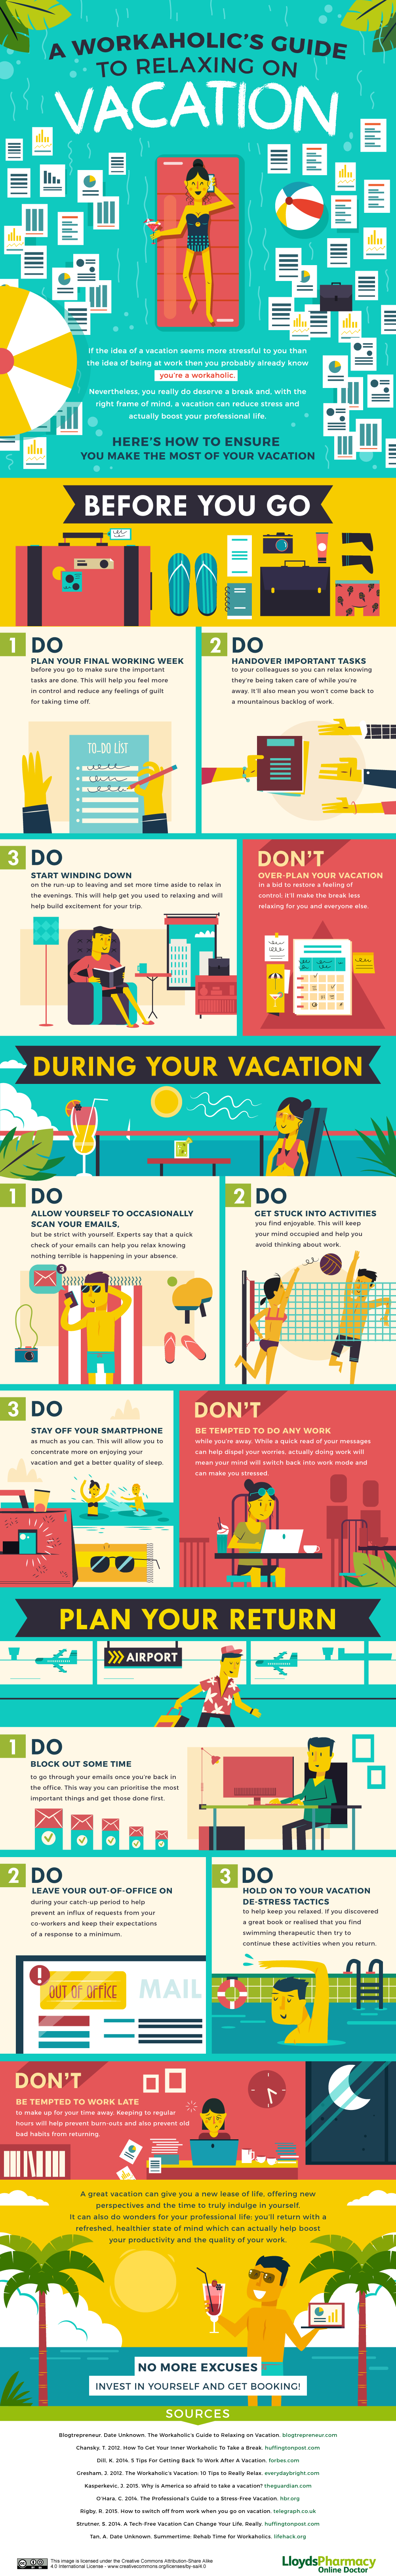 workaholic's guide to relaxing on vacation - infographic